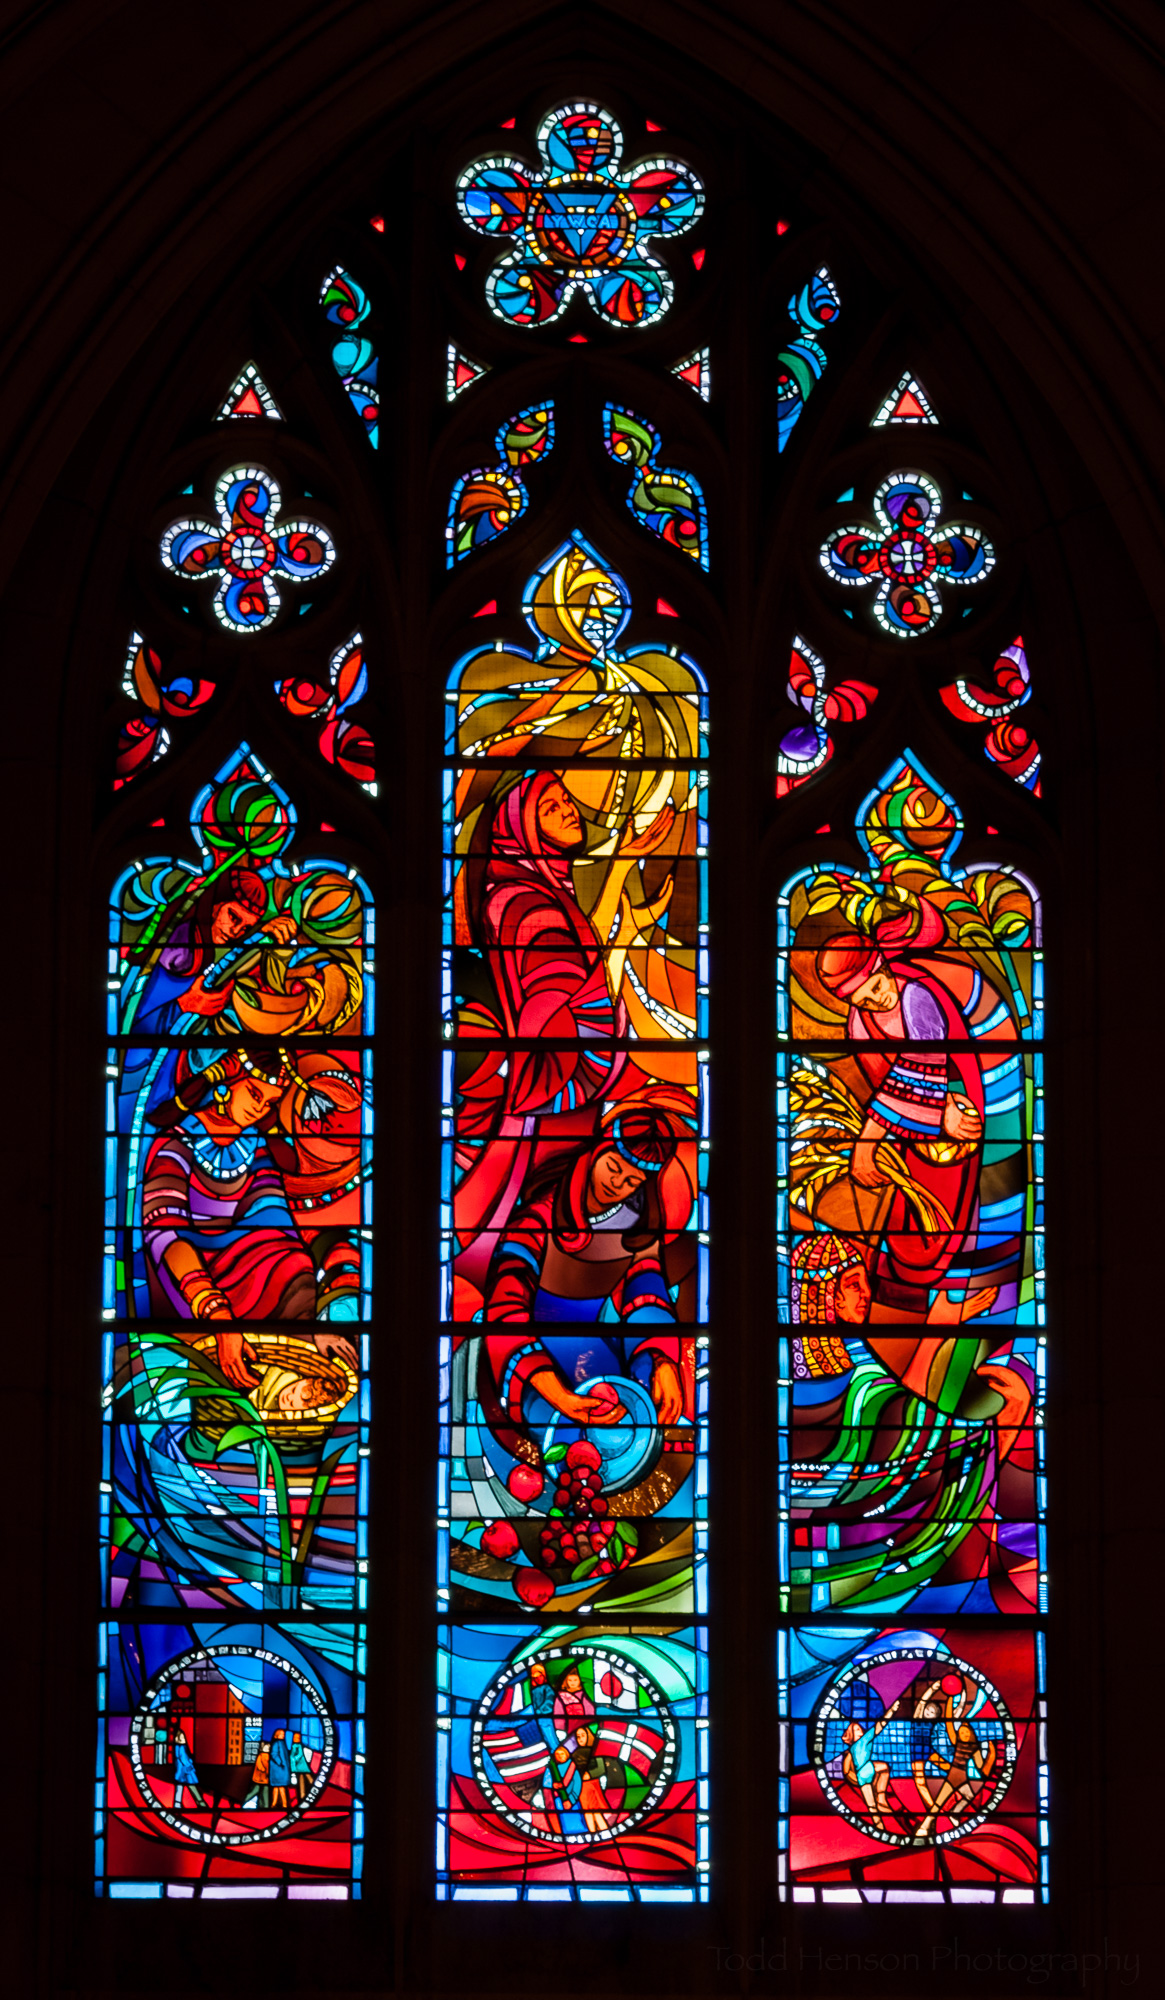 YWCA Window. Stained glass window at Washington National Cathedral.